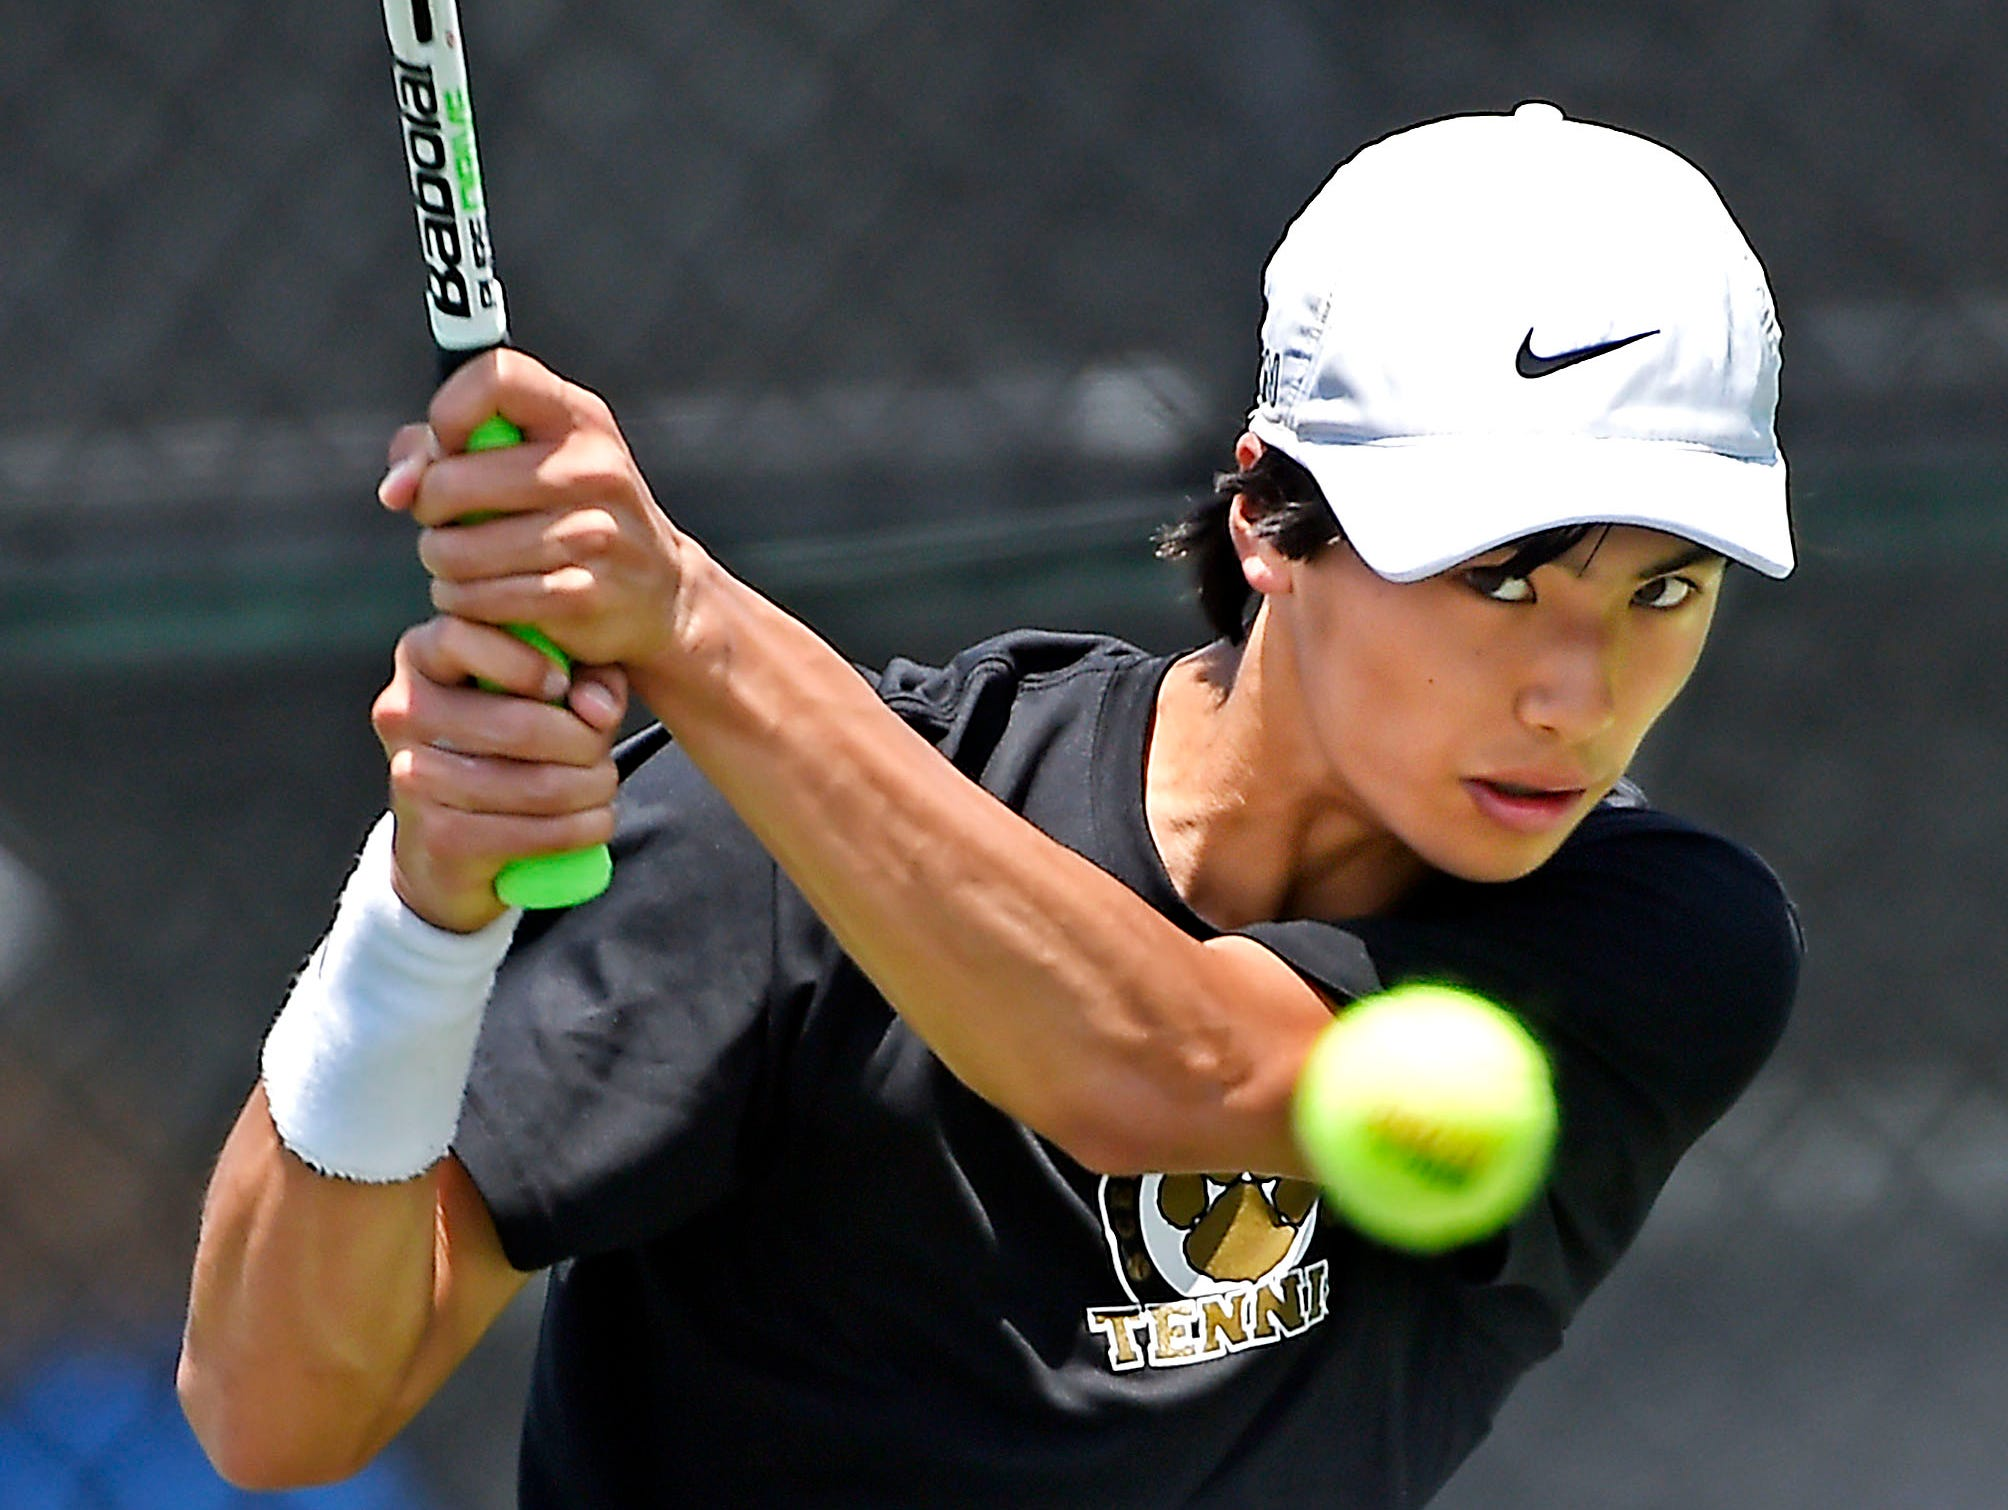 Central Magnet's Nathan Zou returns a serve by MTCS's Will Reeves in the 2016 TSSAA State tennis tournament Thursday May 26, 2016, in Murfreesboro, TN